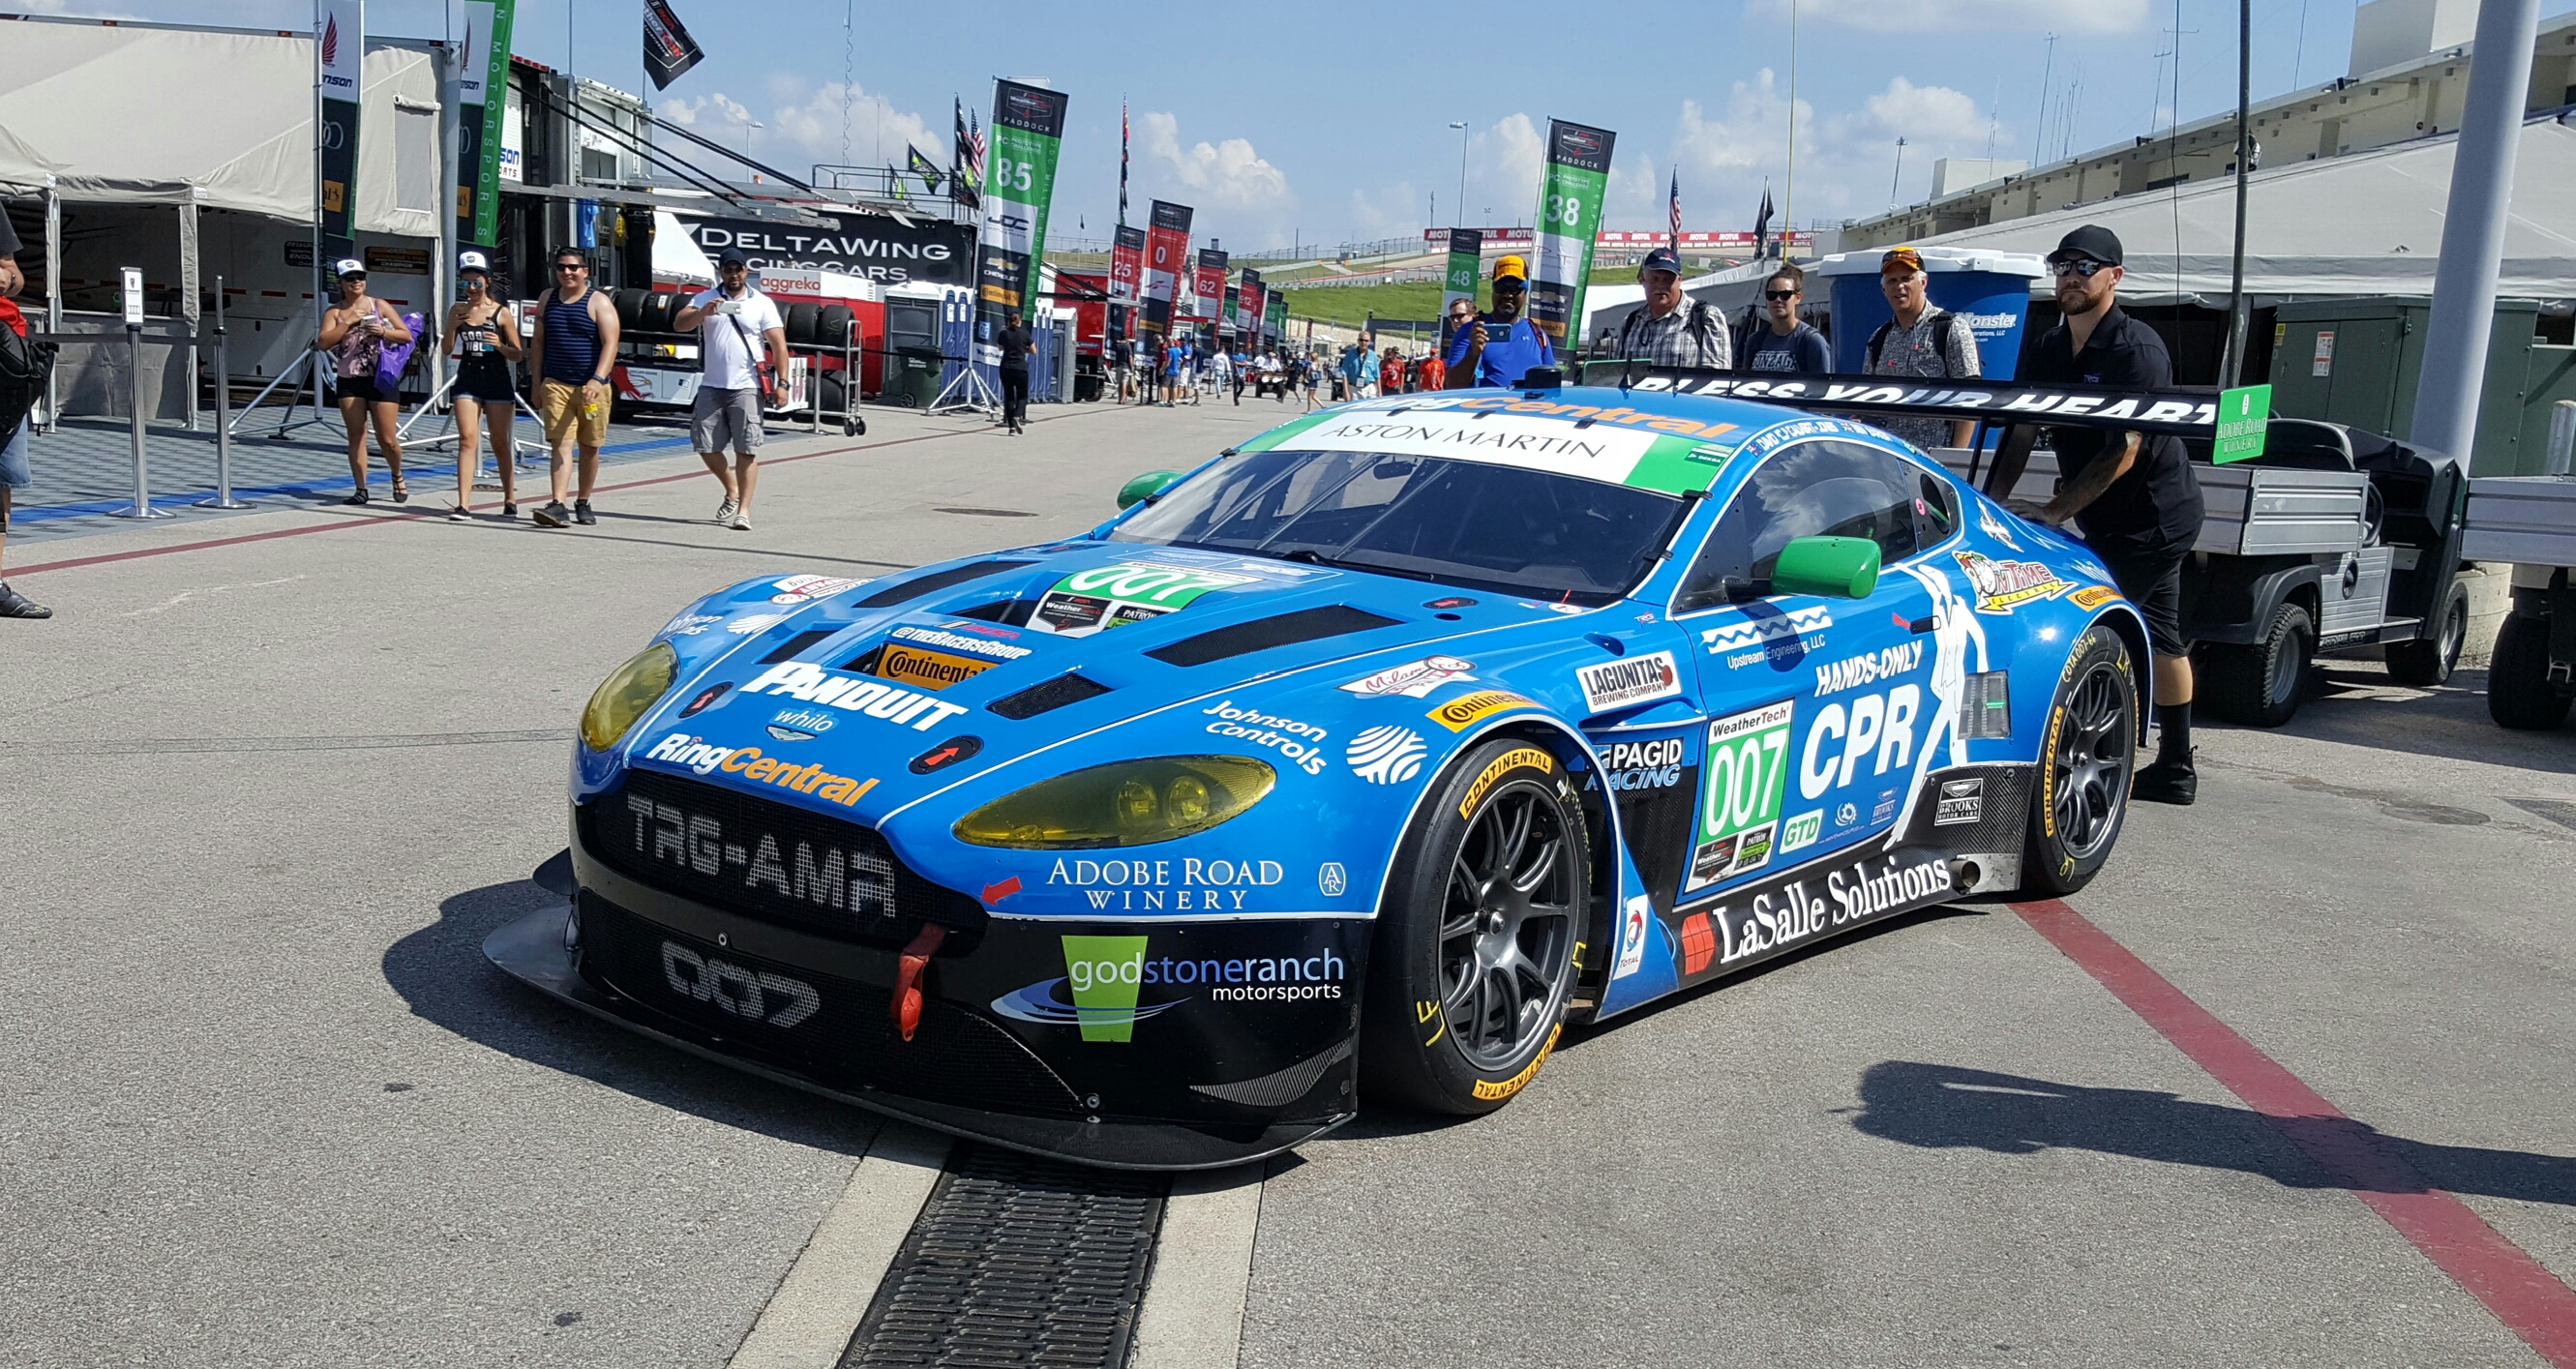 2013 Aston Martin V12 Vantage Gt3 The Racers Group High